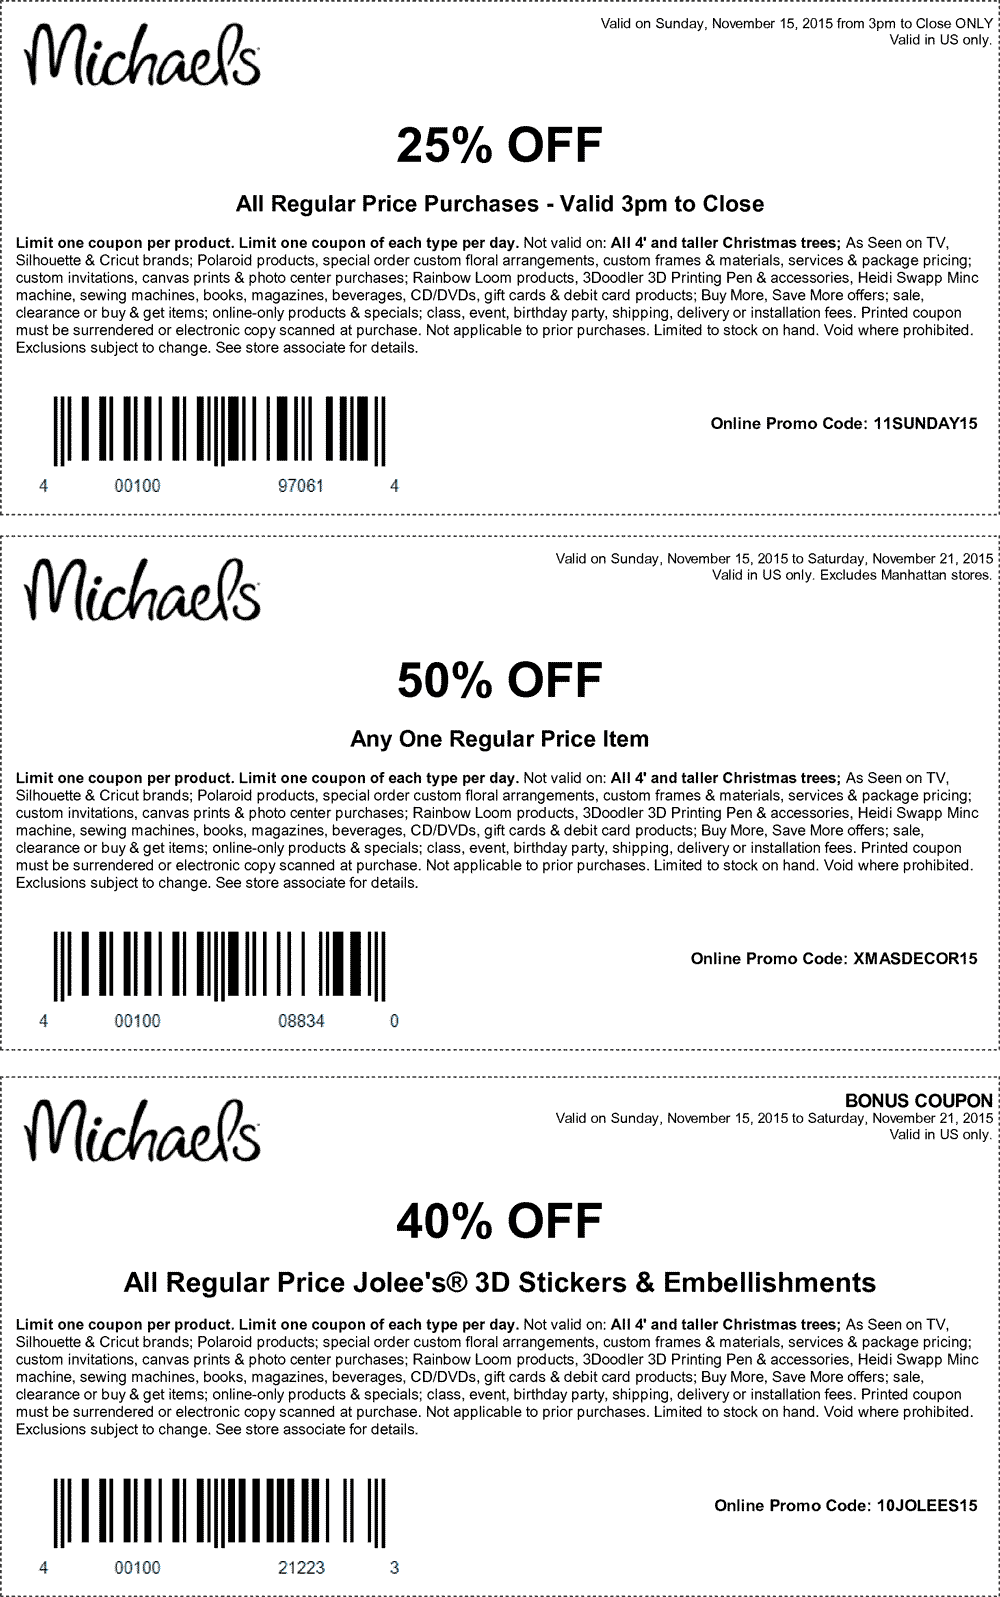 Michaels Coupon May 2017 50% off a single item at Michaels, or online via promo code XMASDECOR15